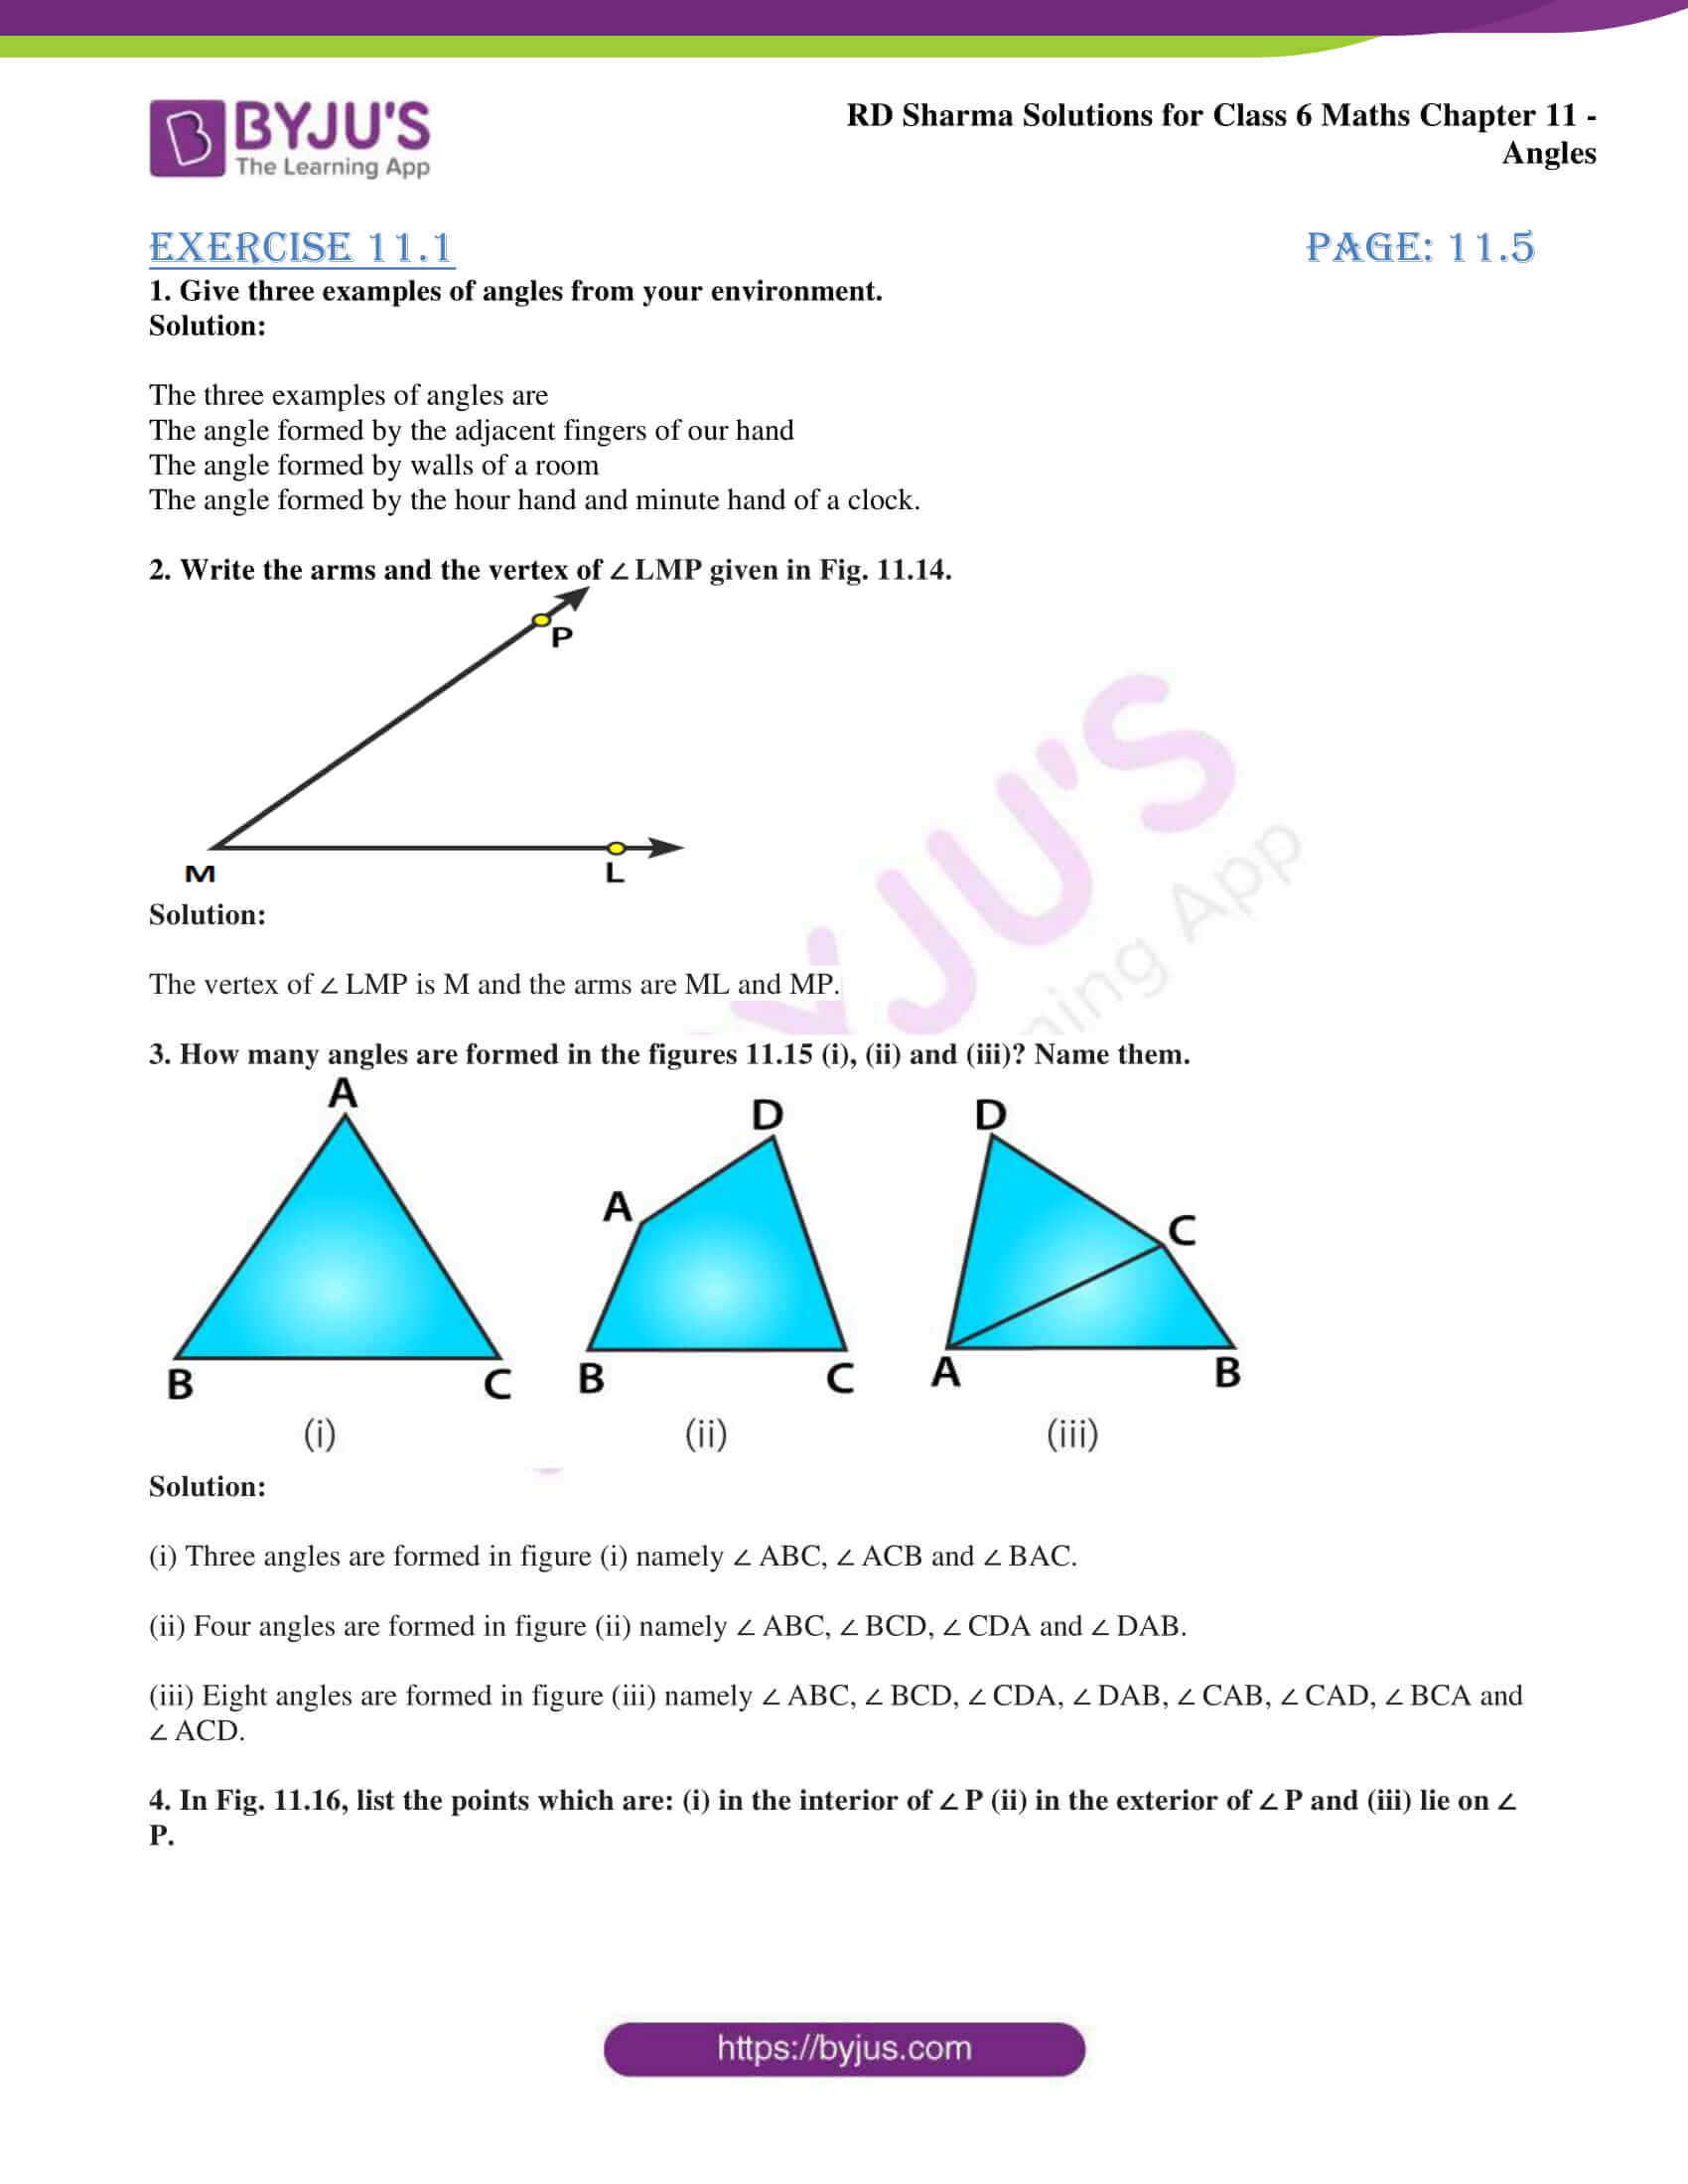 rd sharma solutions class 6 maths chapter 11 Exercise 11.1 01